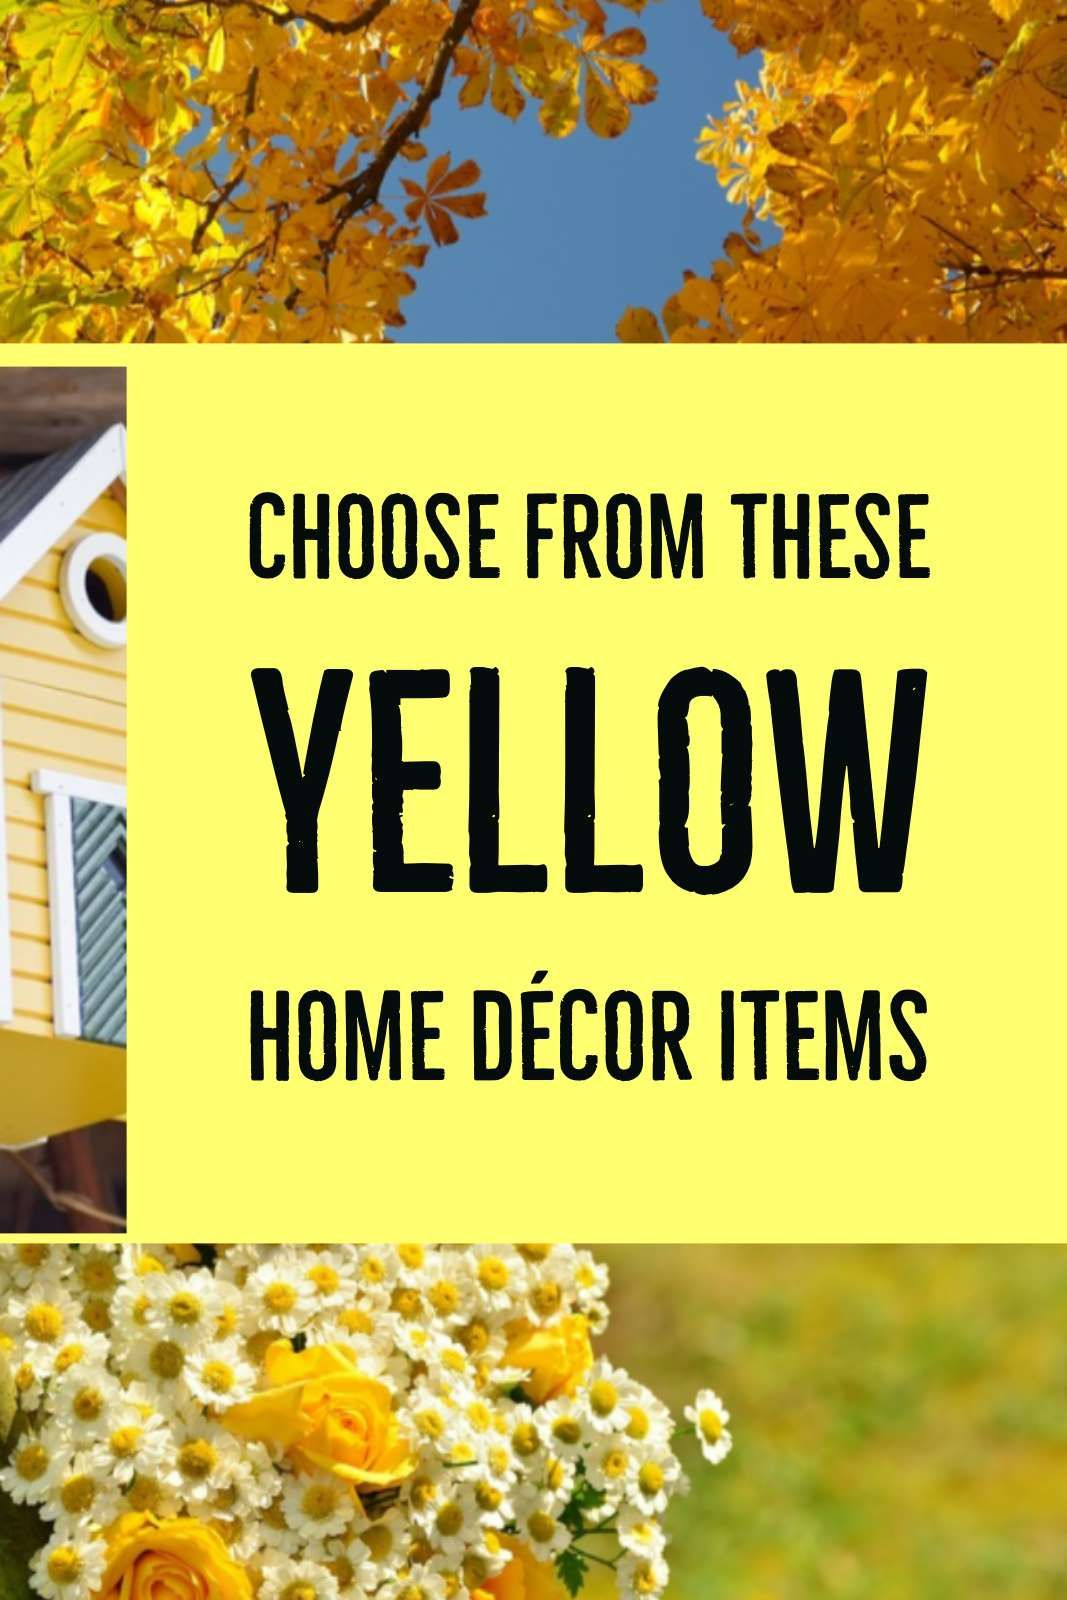 Yellow Home Decor Items for a Room with a Yellow Palette | Pinterest ...